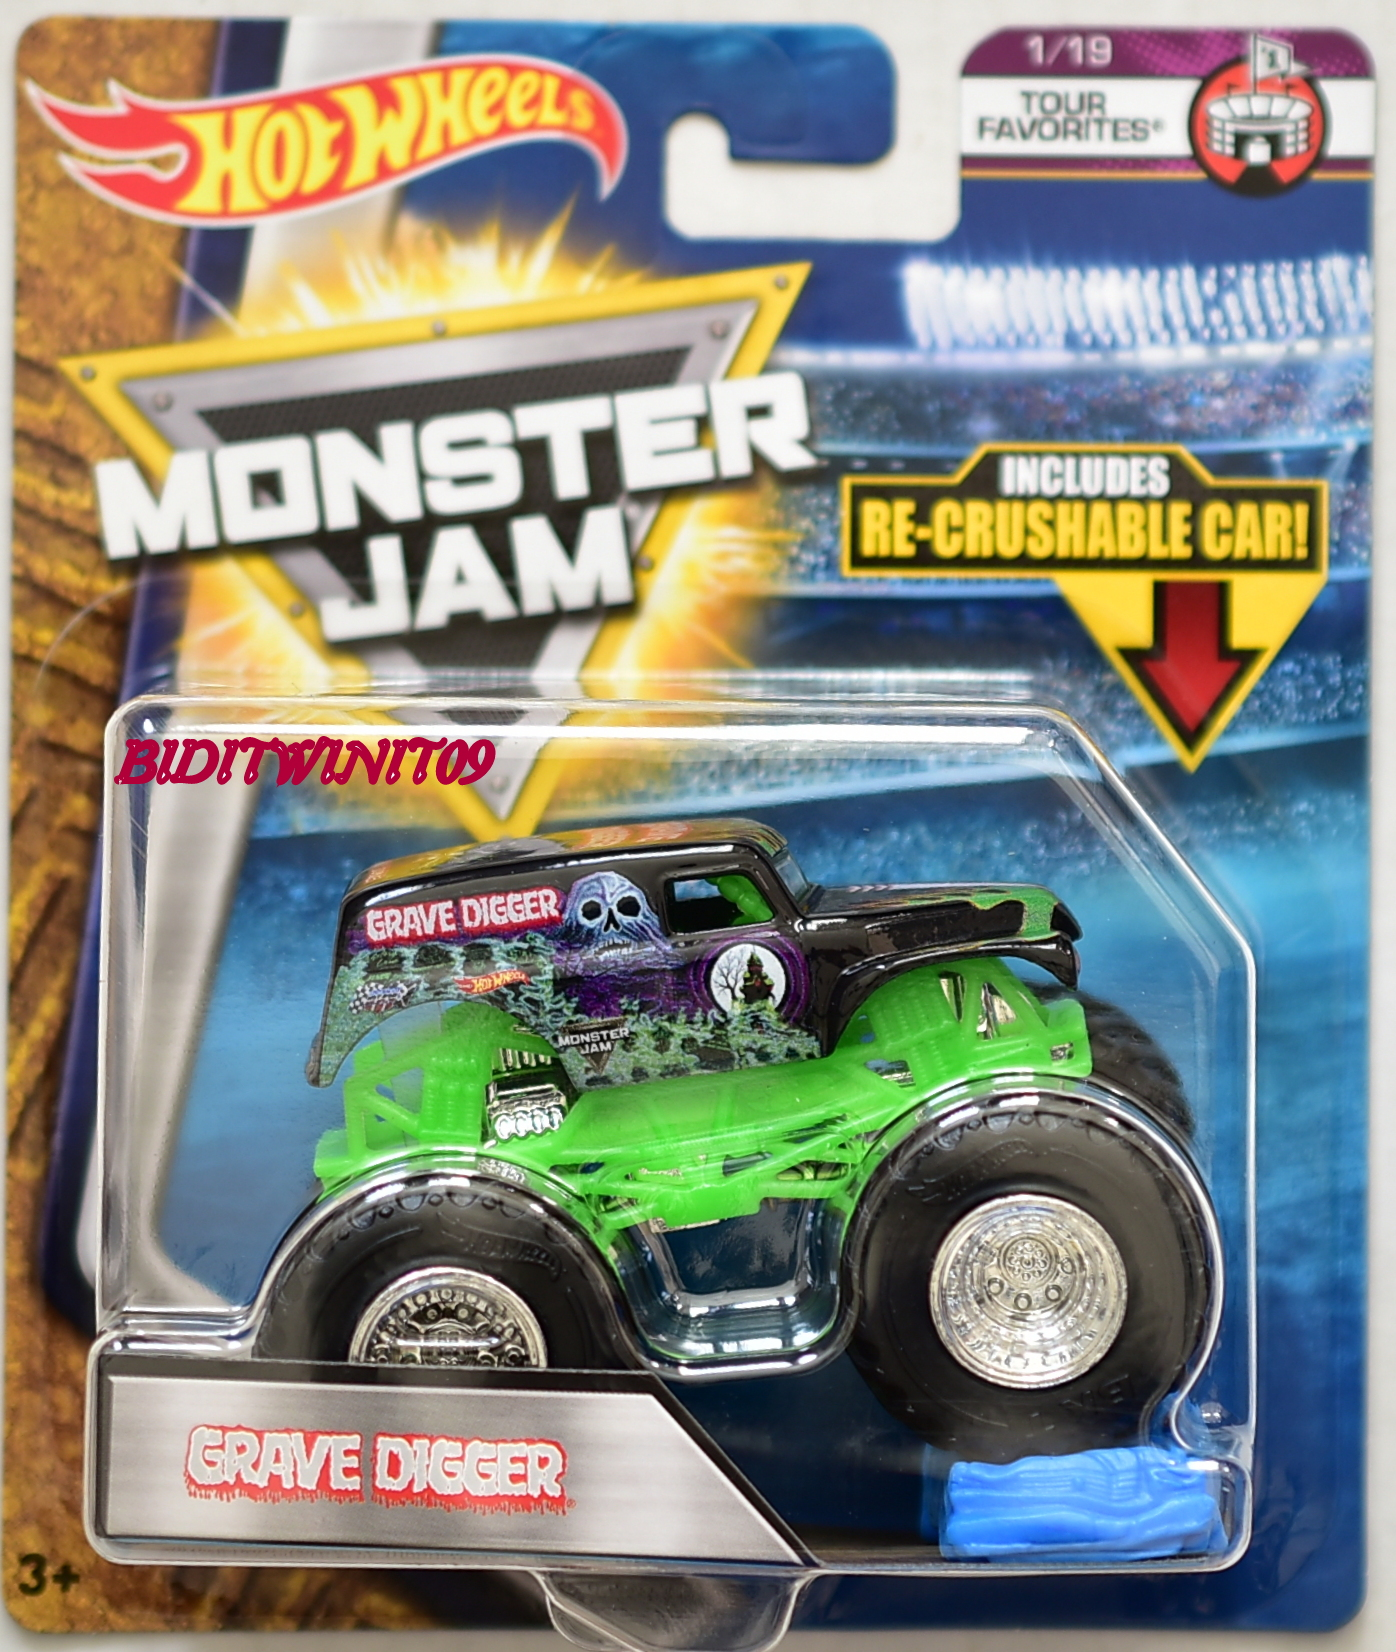 HOT WHEELS 2017 MONSTER JAM W/ RE-CRUSHABLE CAR GRAVE DIGGER TOUR FAVORITES